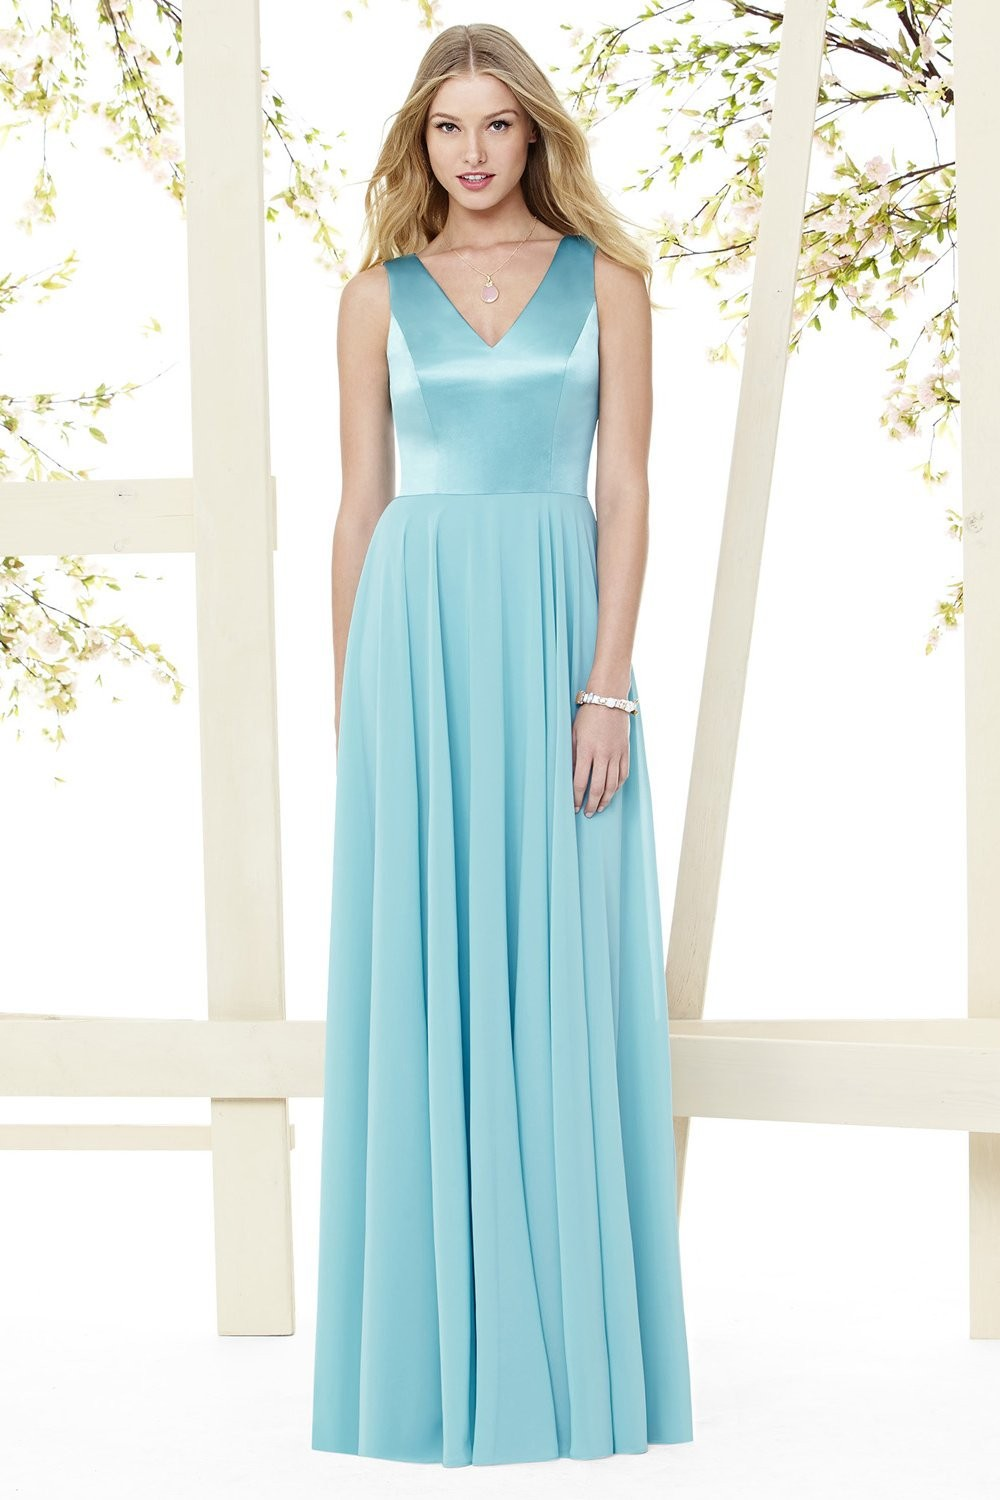 Simple Yet Elegant V Neckline Long Wedding Dresses For Plus Size Sky ...